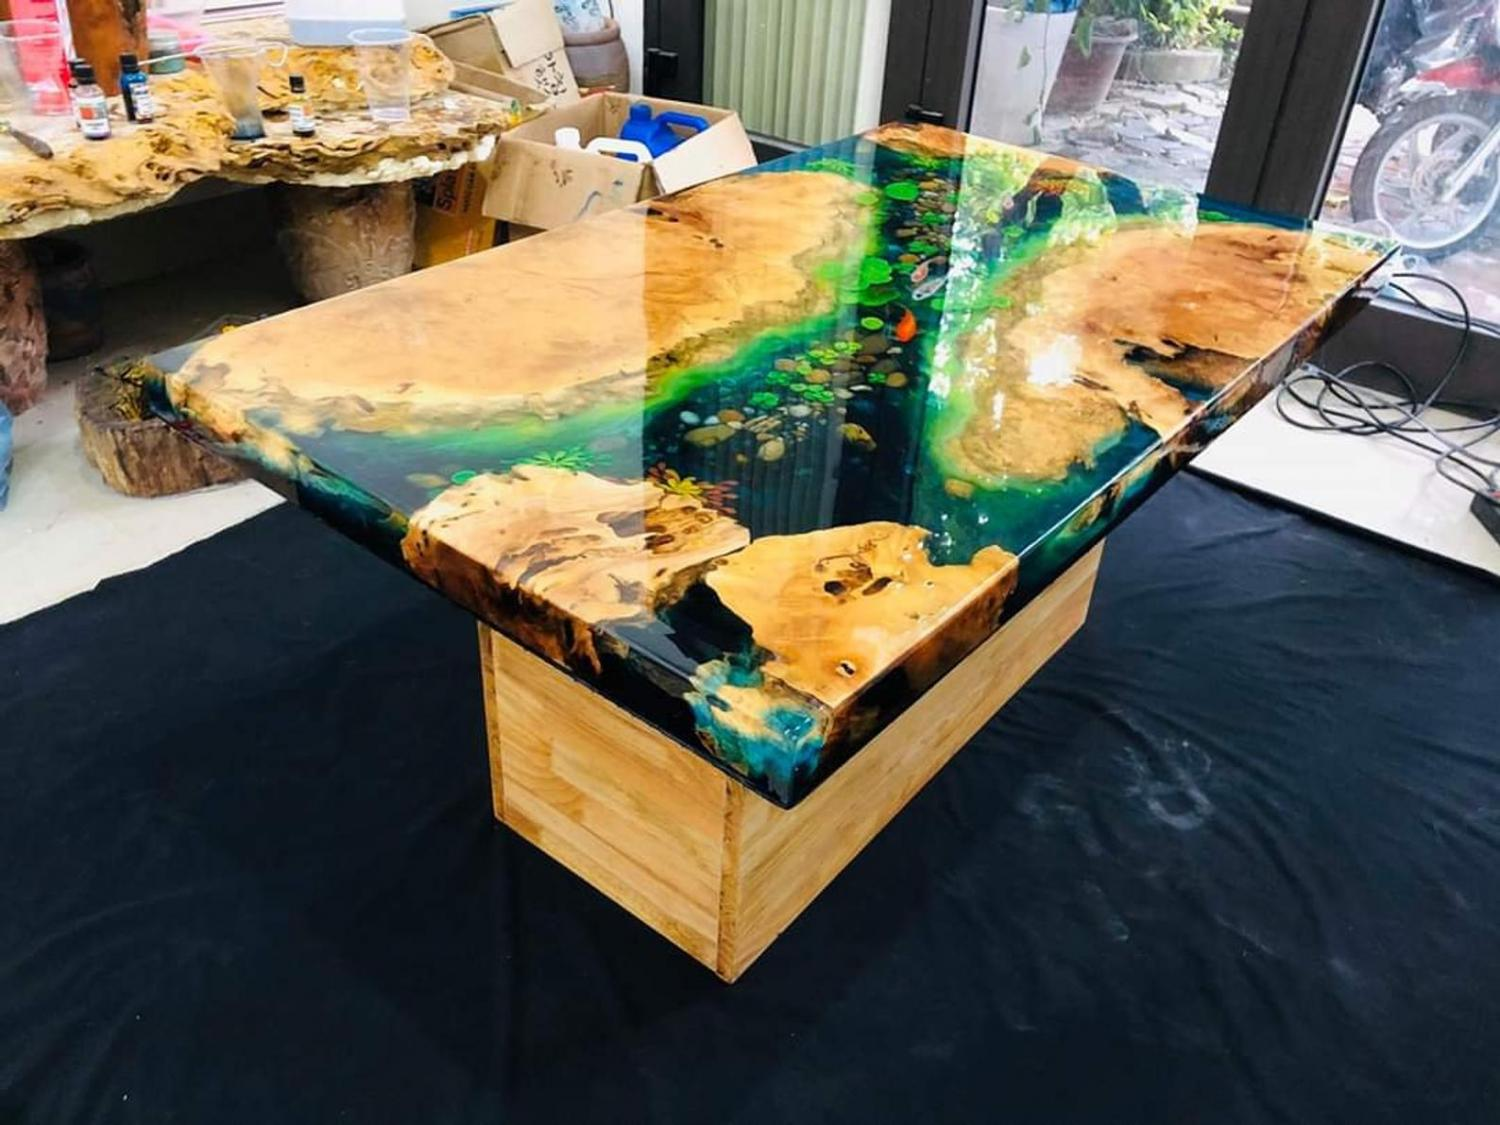 amazing epoxy table is made to look like a koi pond with what looks like real fish swimming around inside the water